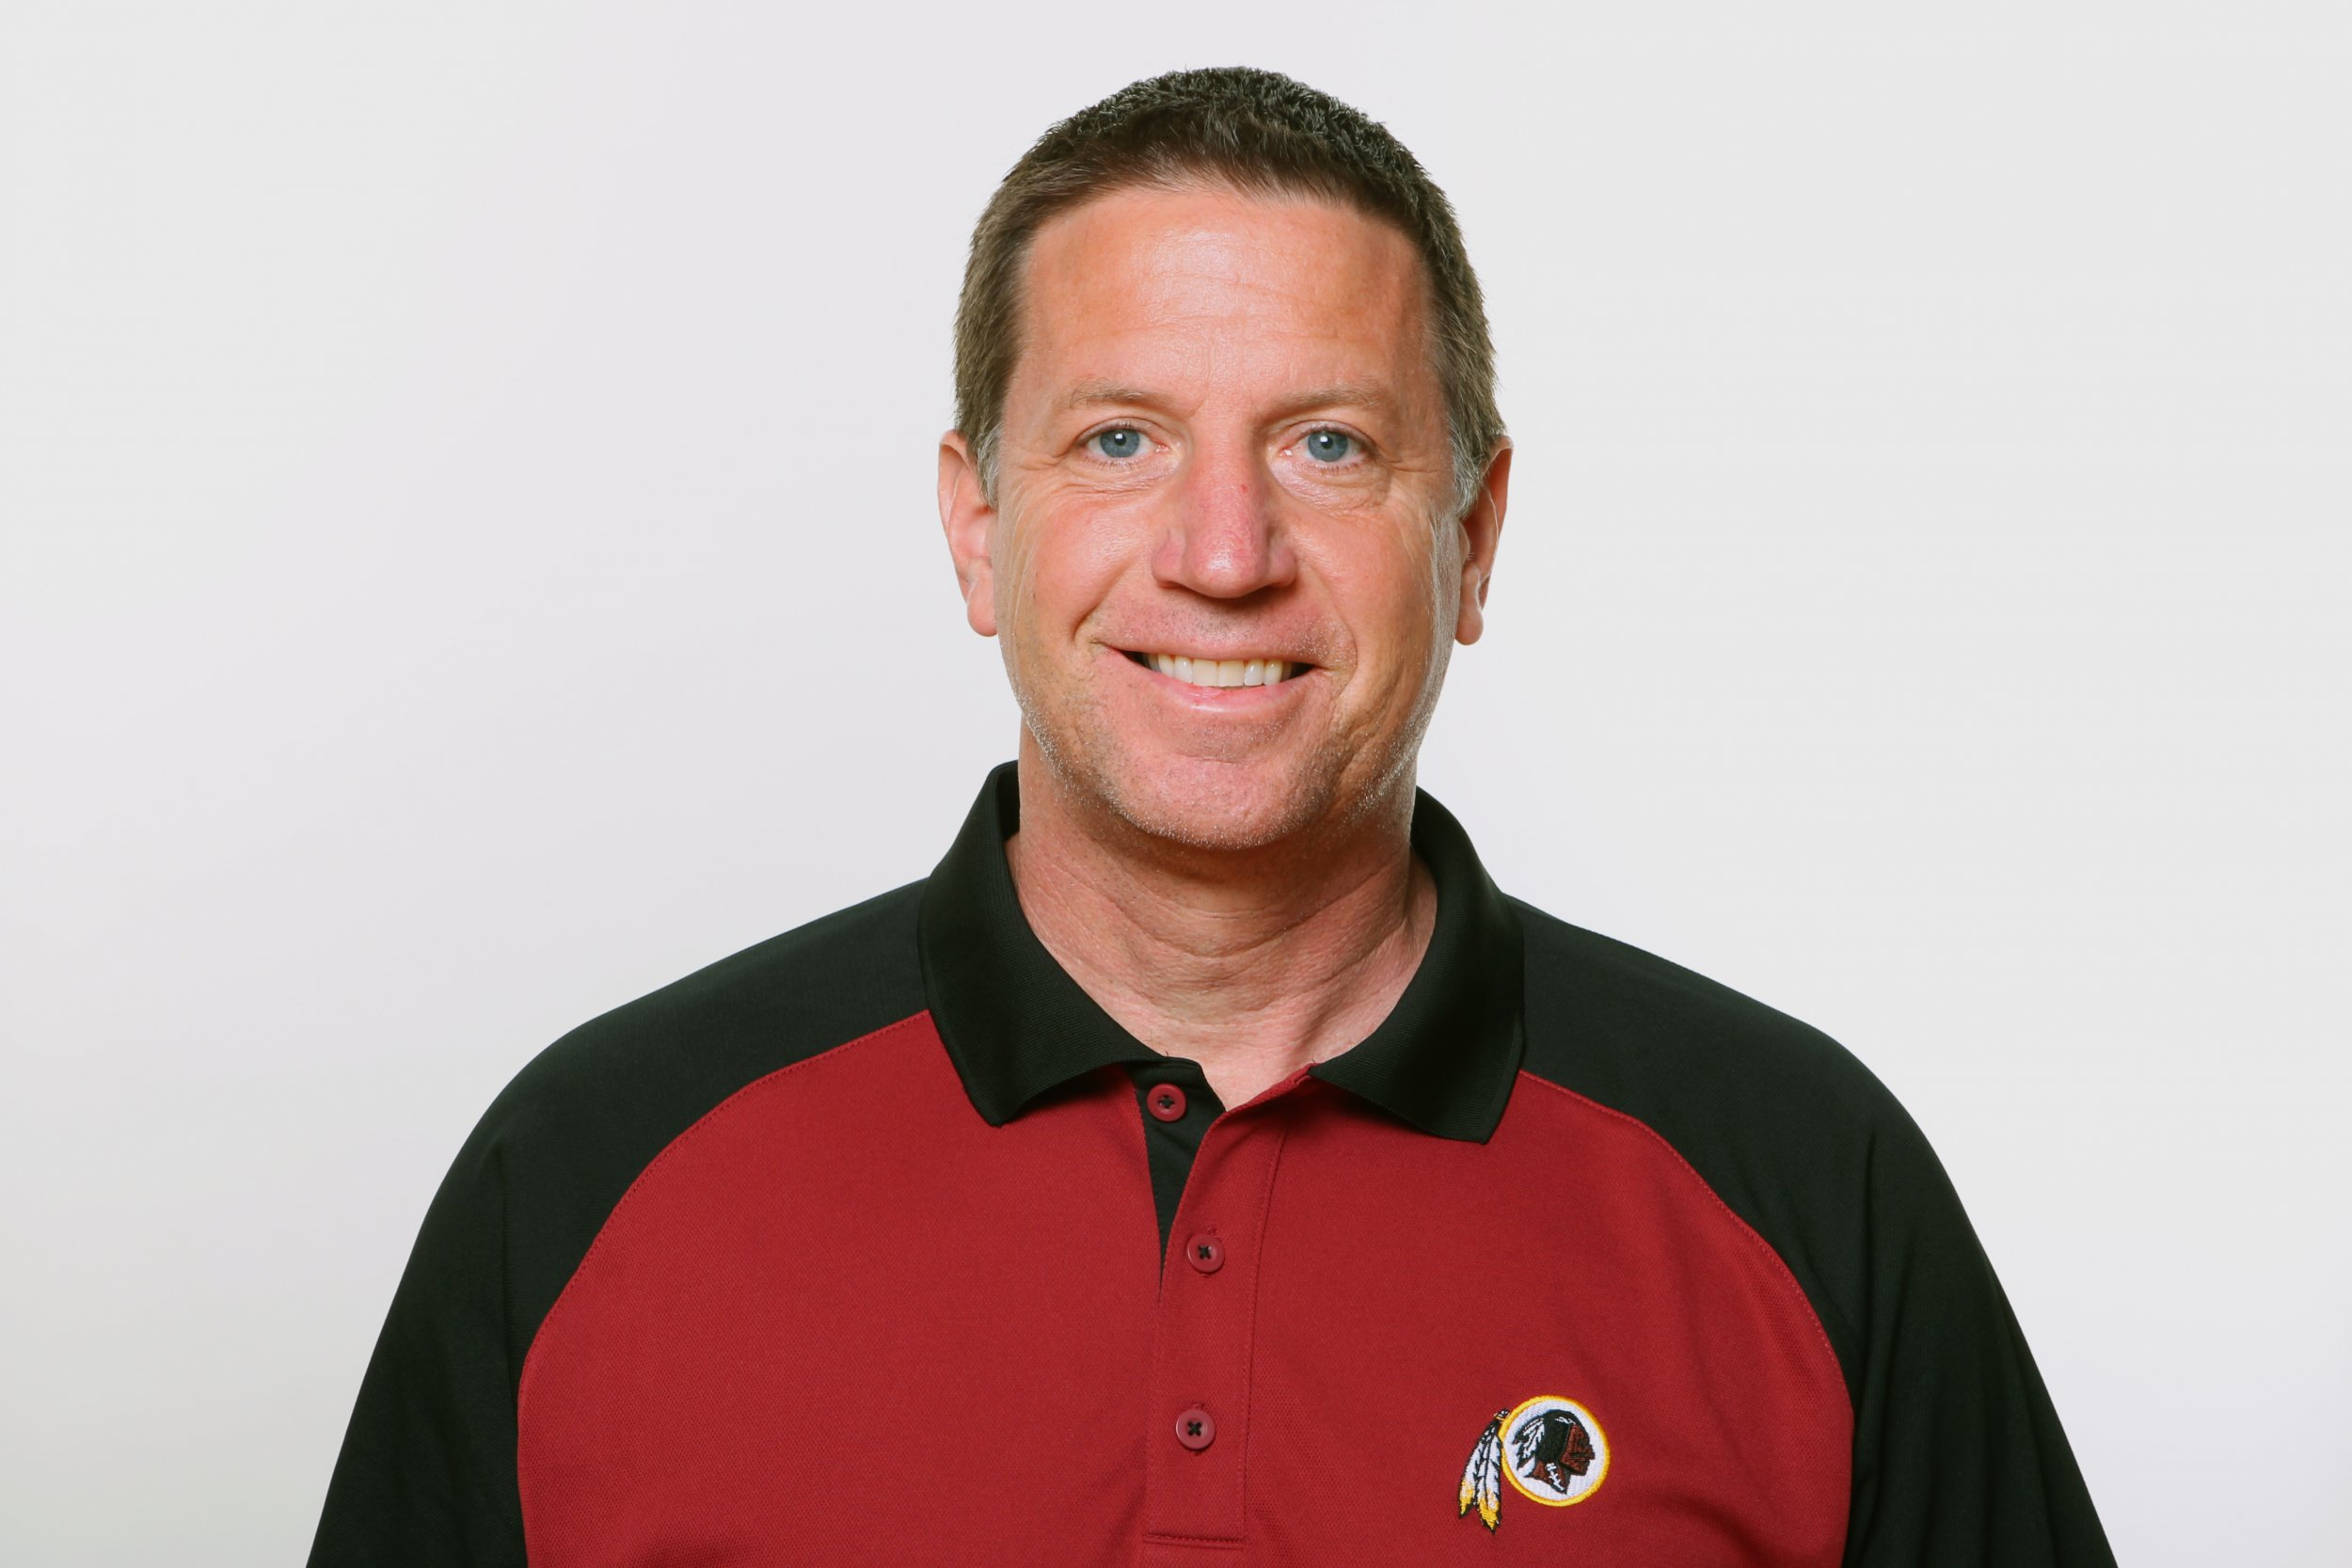 Former Washington Redskins, now Miami Dolphins, offensive line coach Chris Foerster.